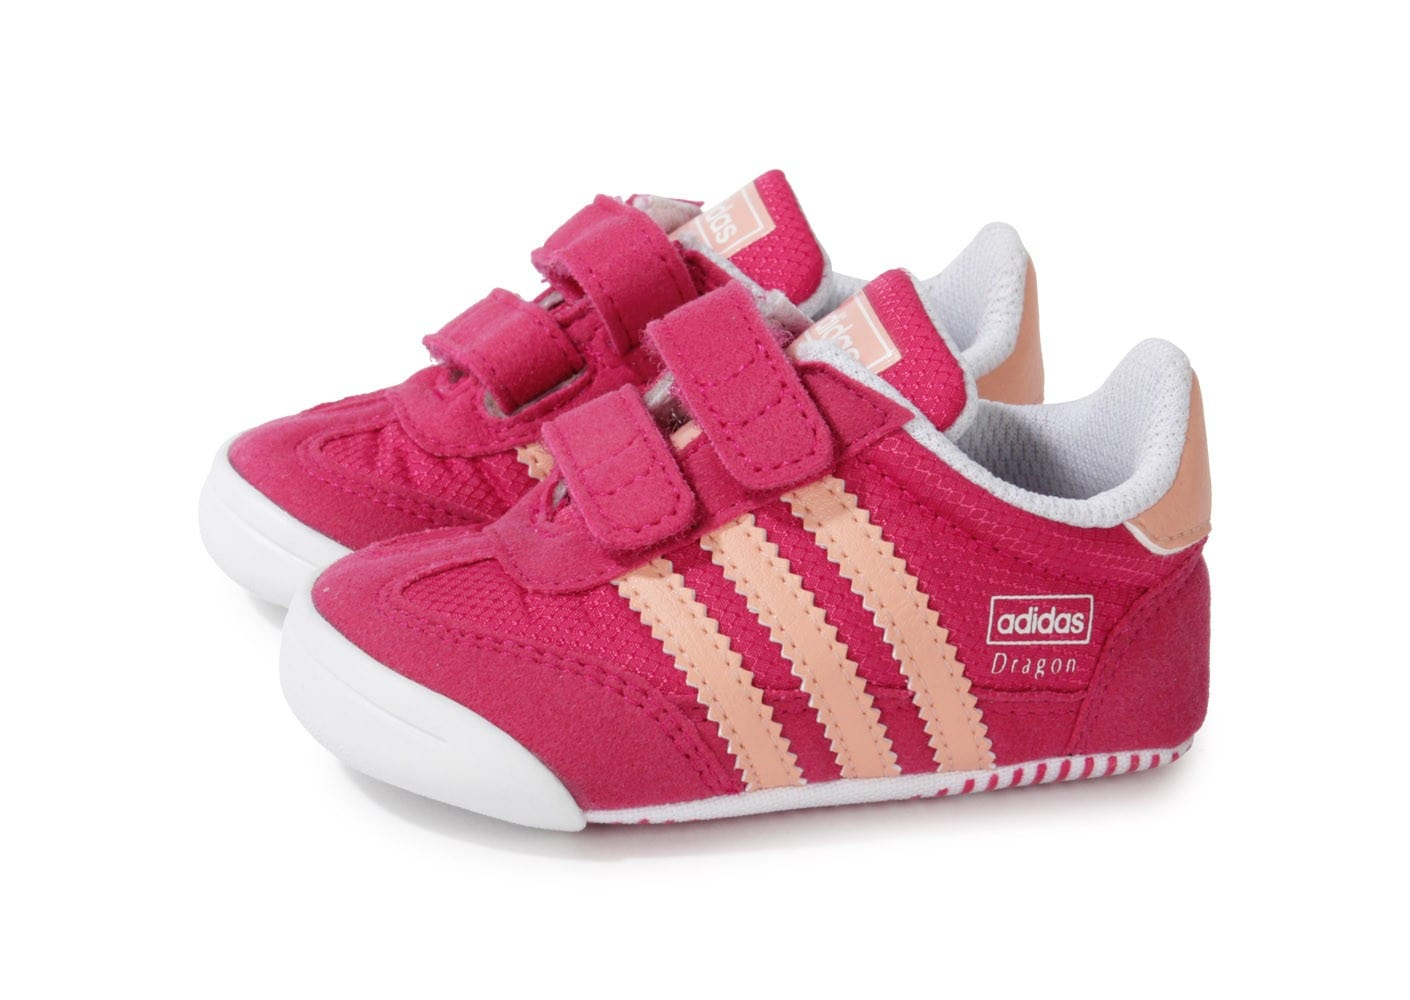 Adidas Dragon Rose Rose Dragon Chaussure Chaussure Adidas